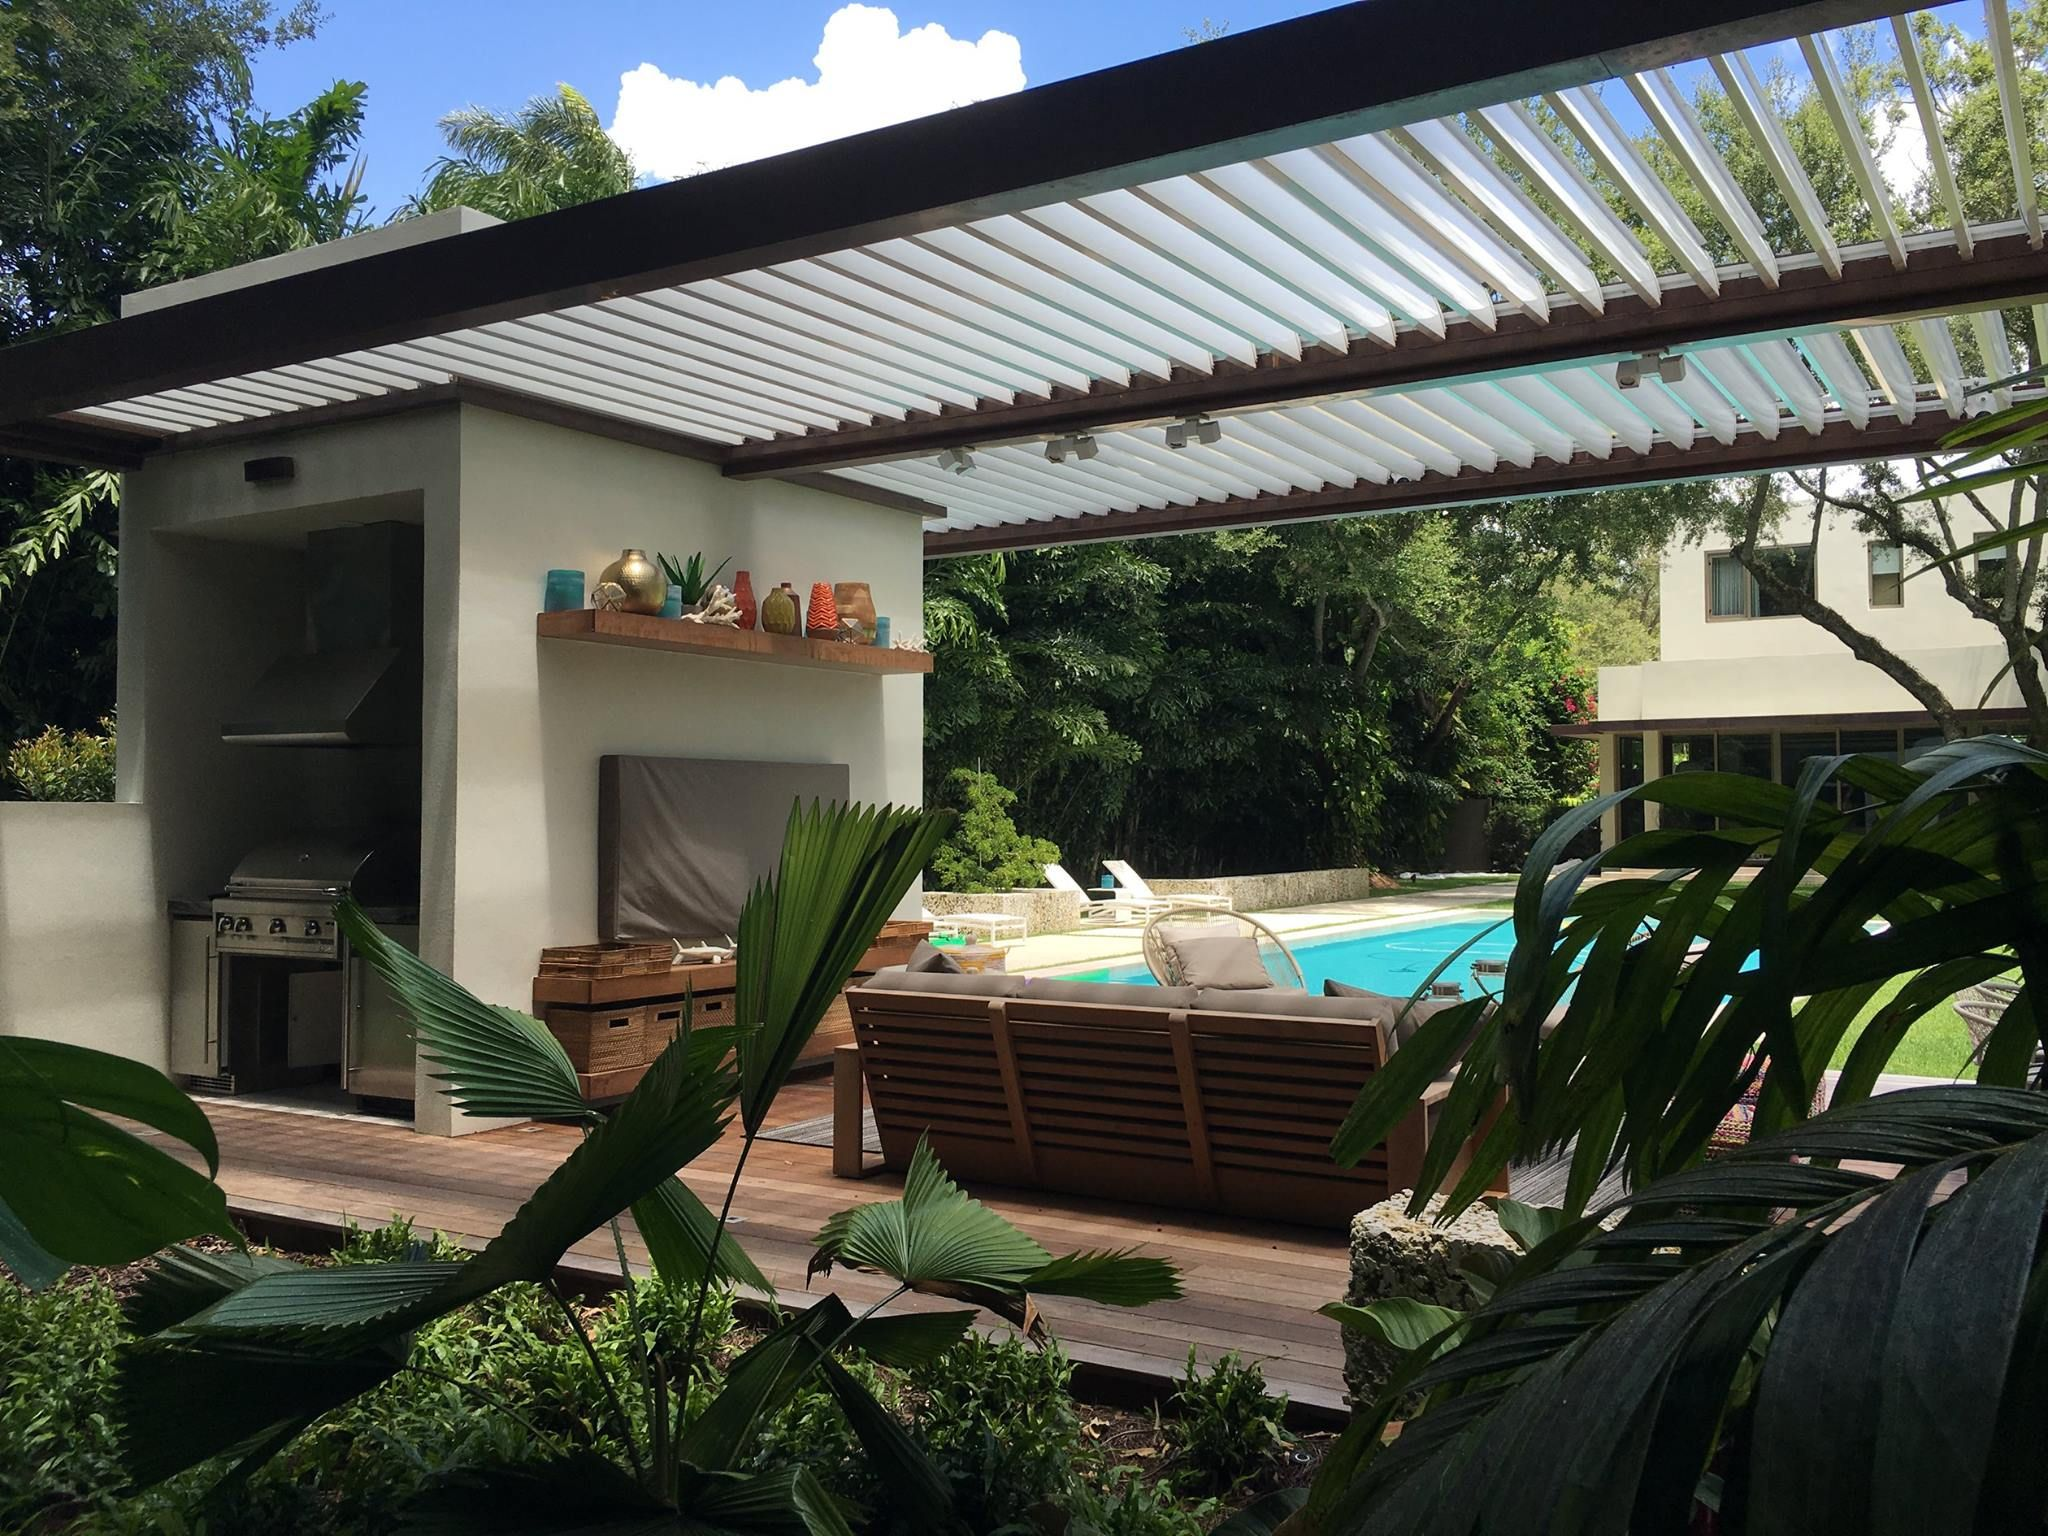 Adore This Outdoor Kitchen Dining And Lounge Area Featuring An Equinox Adjustable Louvered Roof Which Opens For Sun Pergola Plans Roofs Rustic Pergola Pergola